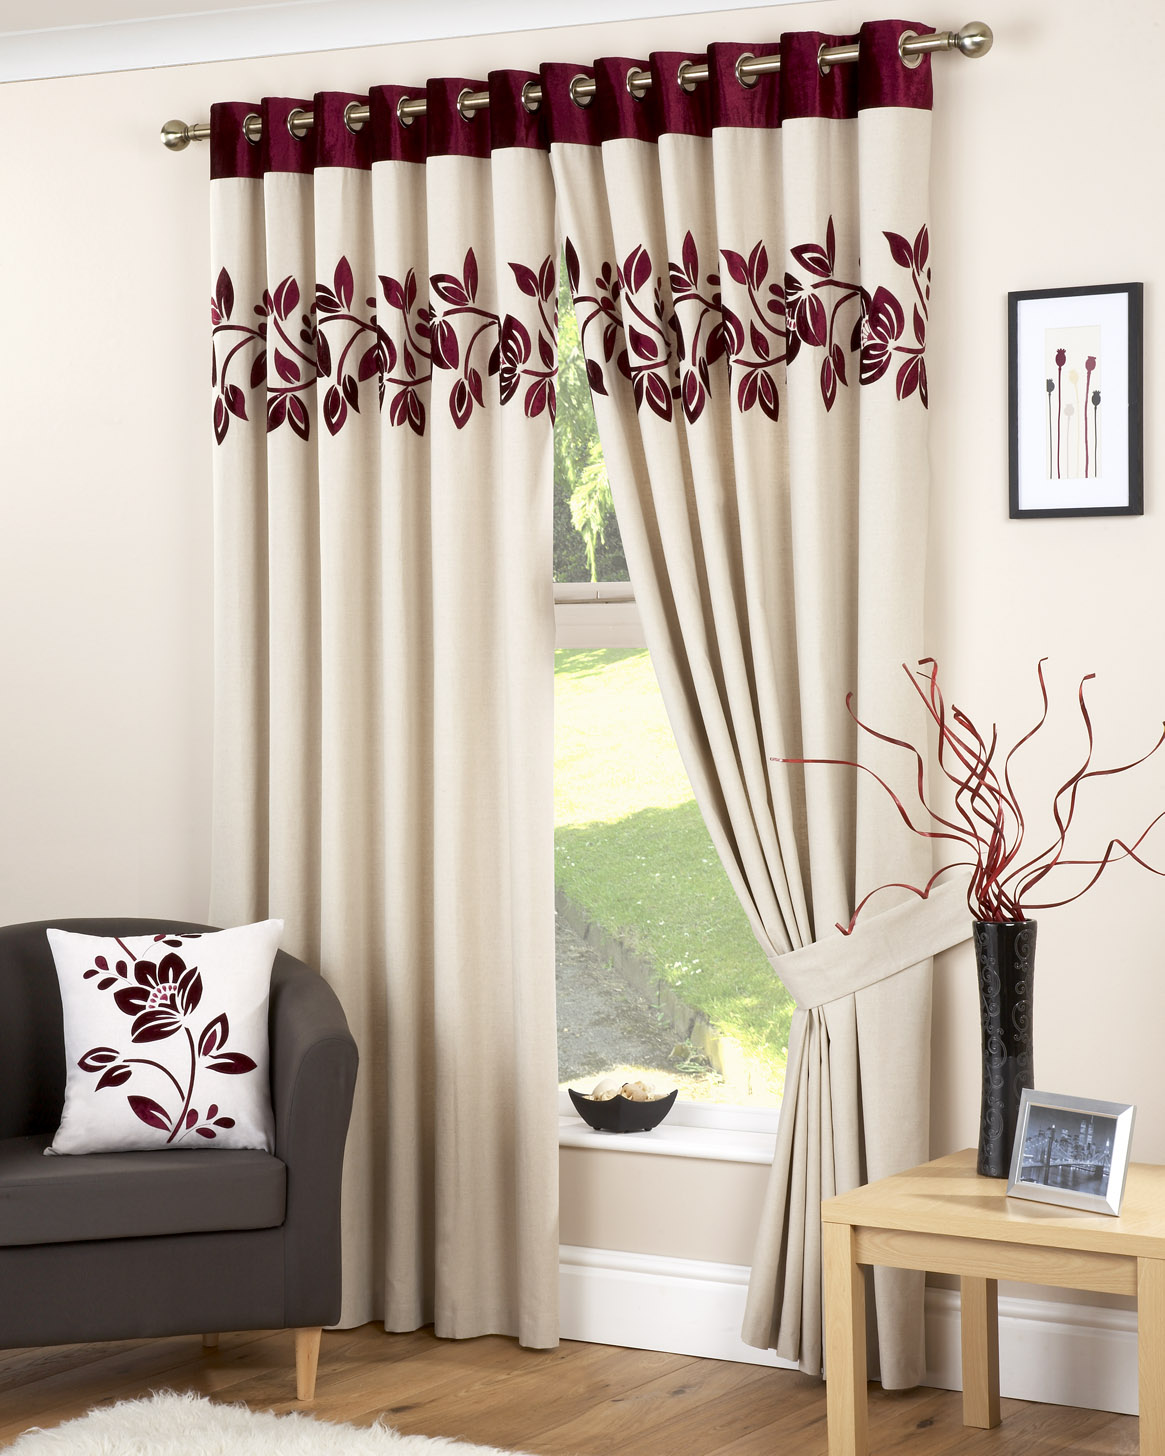 dp panel lush inch x decor pair white curtain home set amazon window black of curtains cream prima kitchen and com